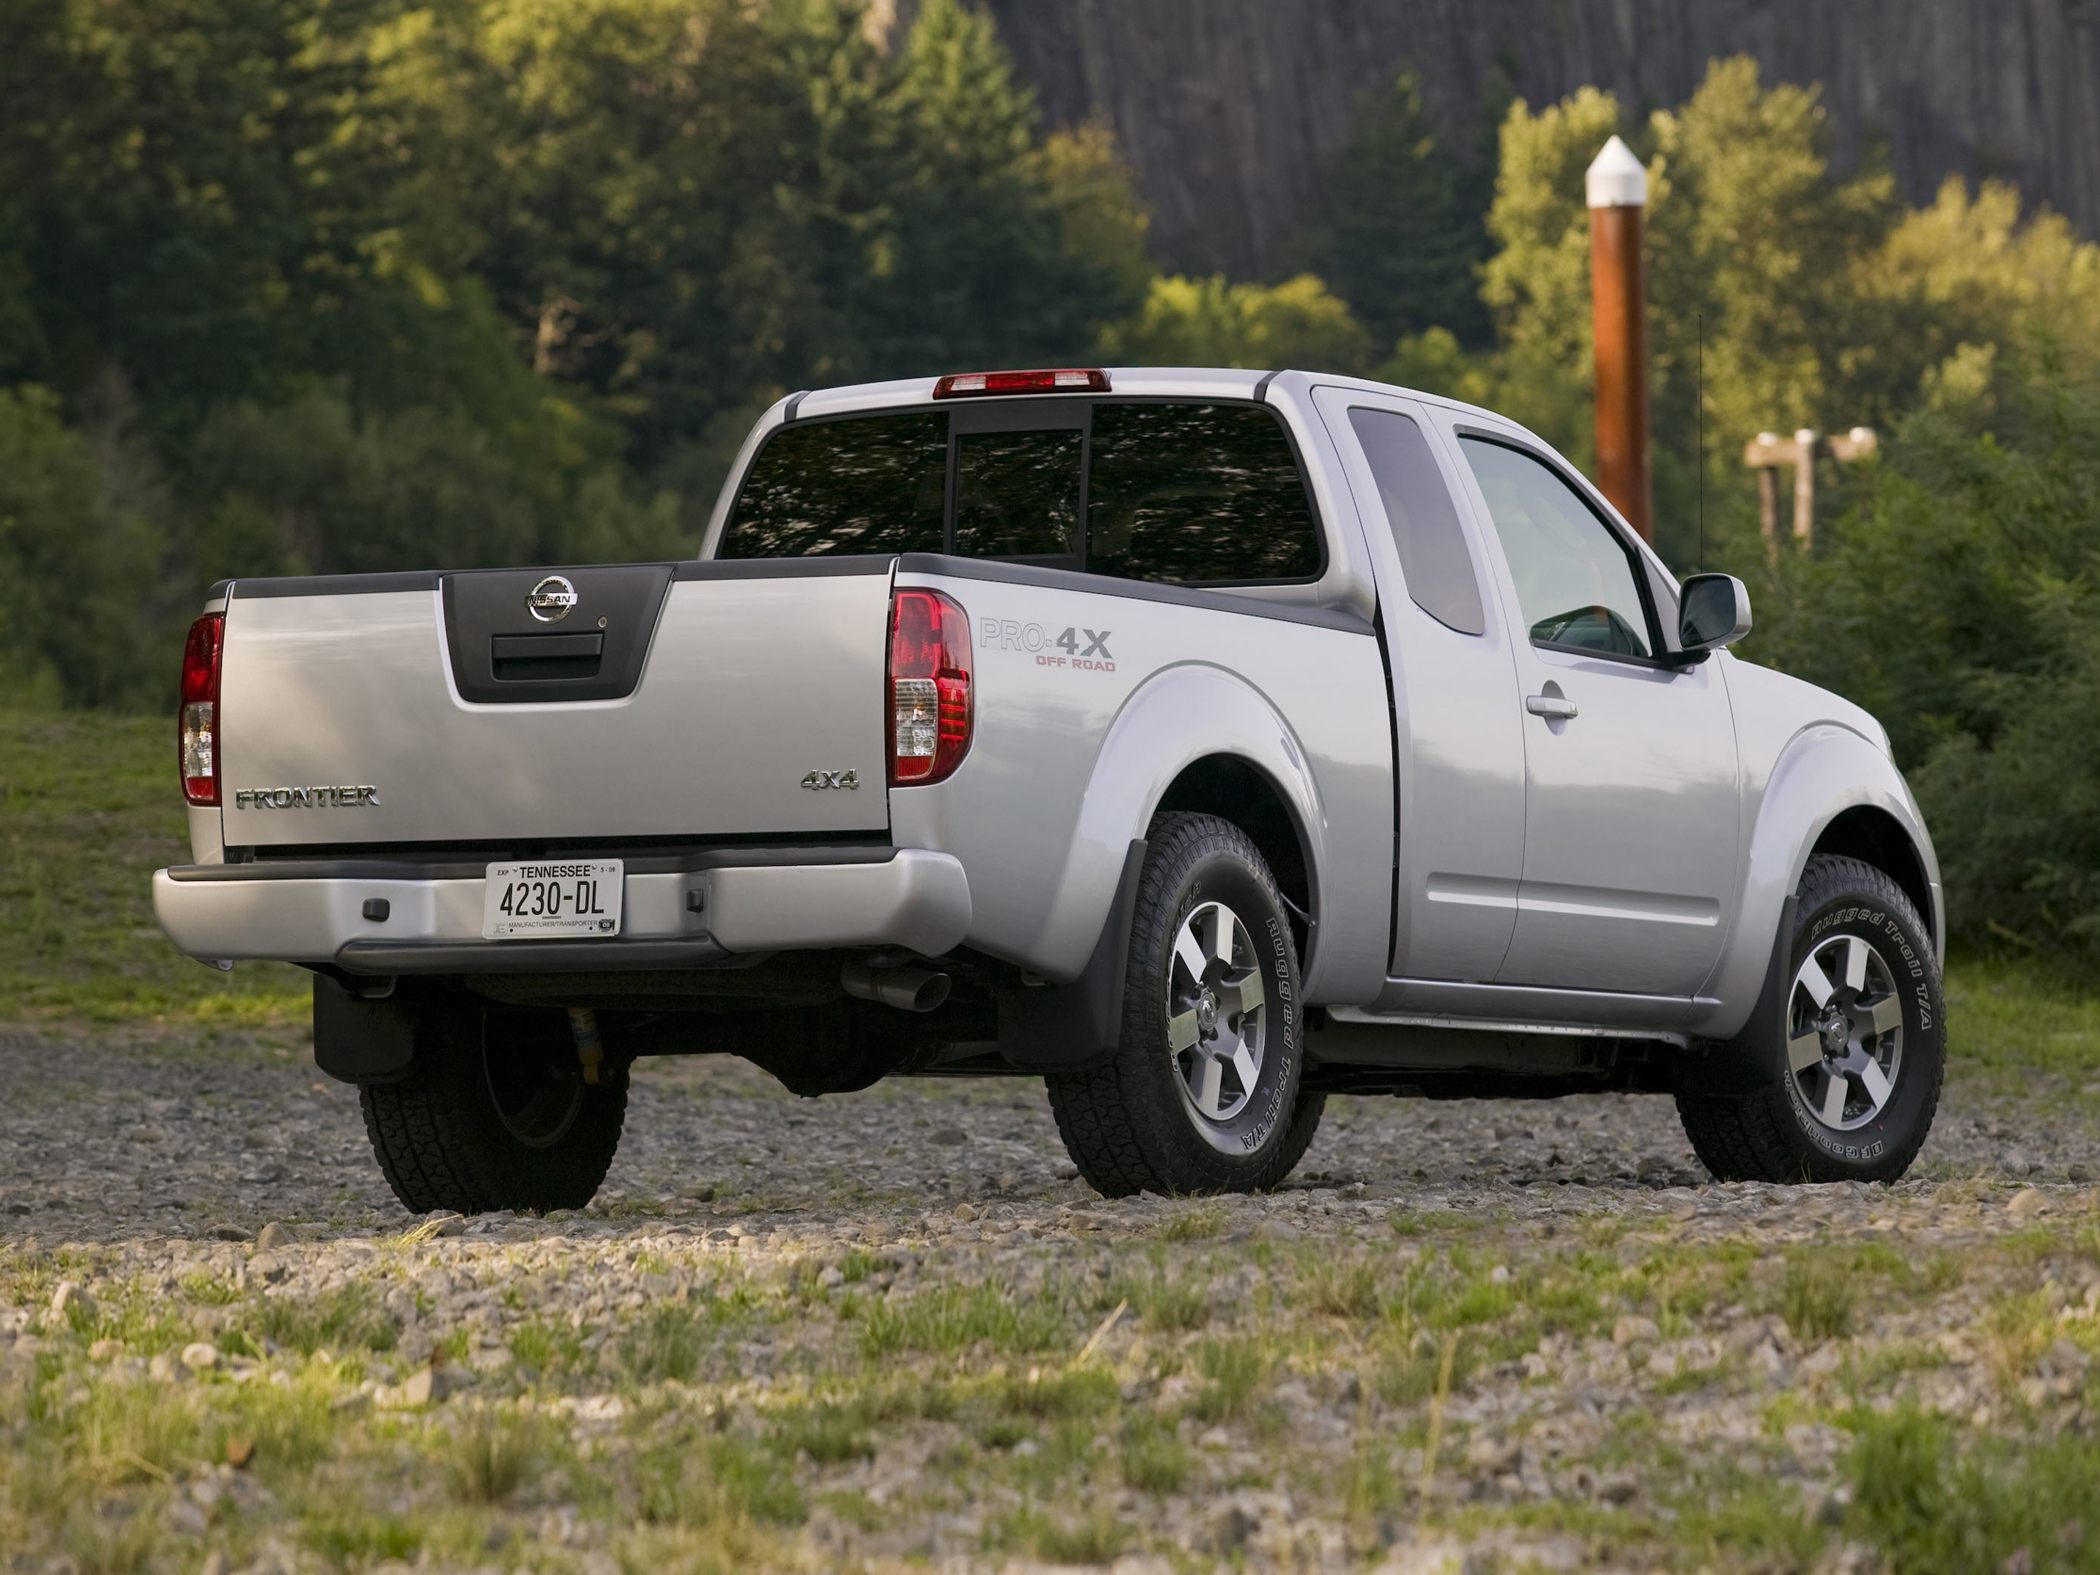 new titan buy nissan test truck expert drive car models review